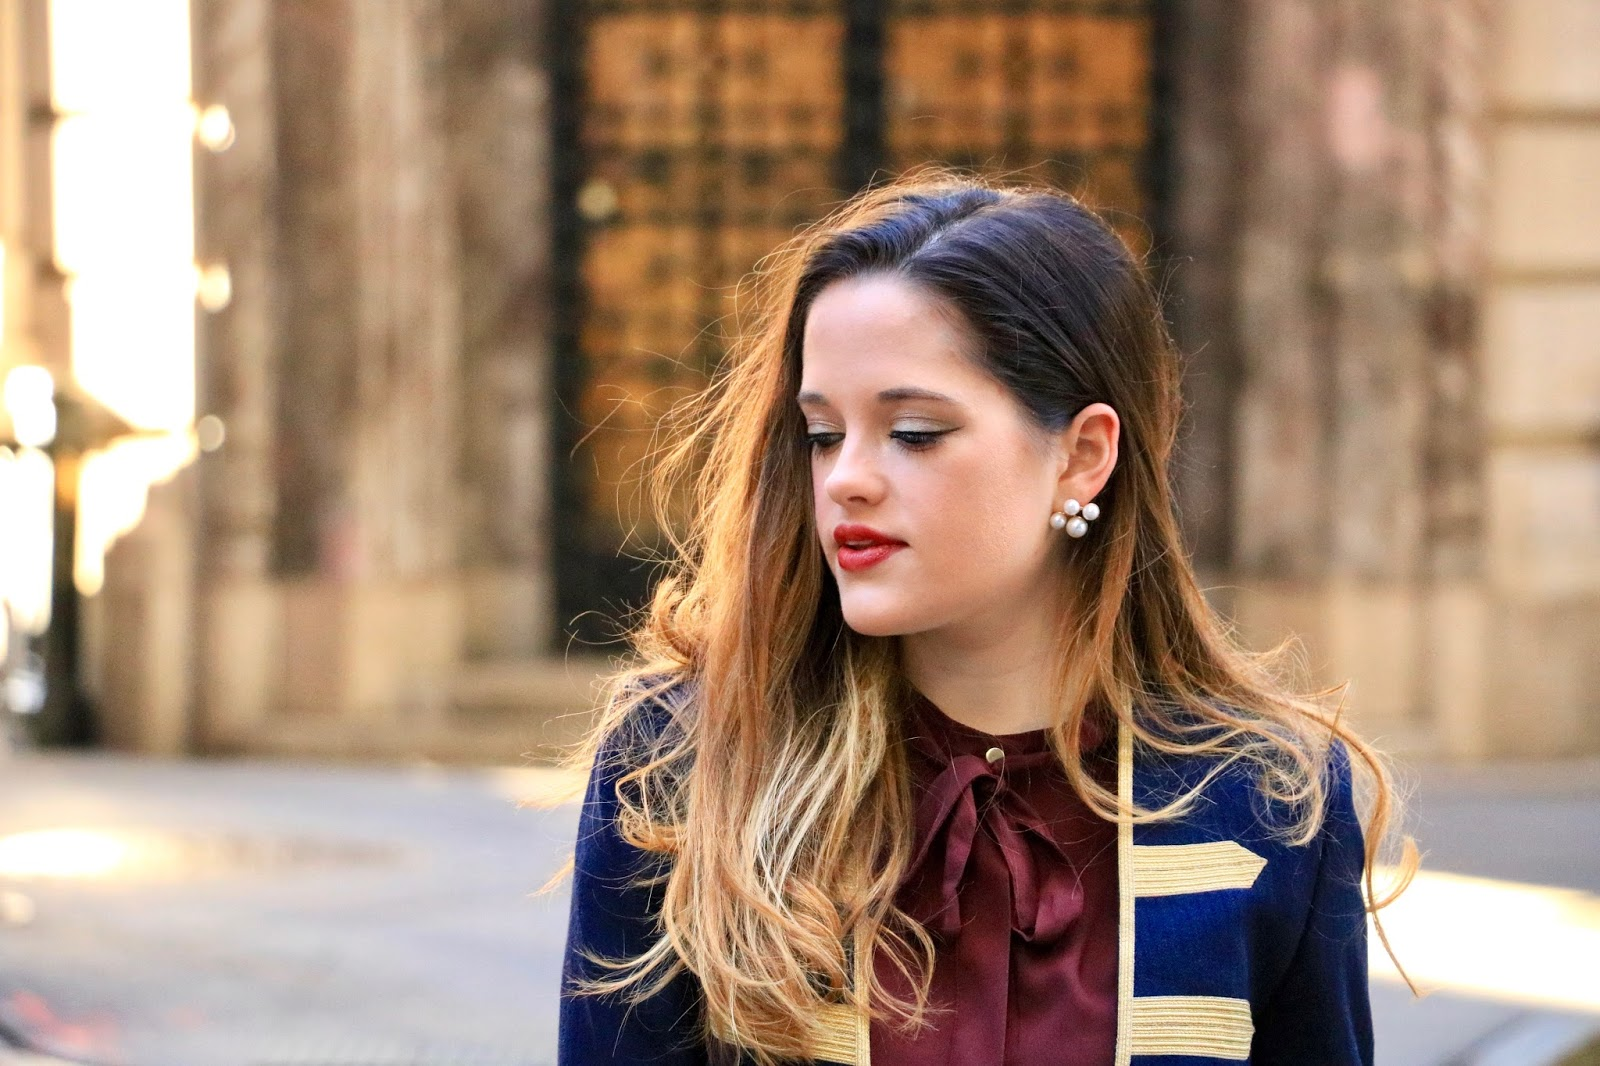 Nyc beauty blogger Kathleen Harper's holiday makeup ideas